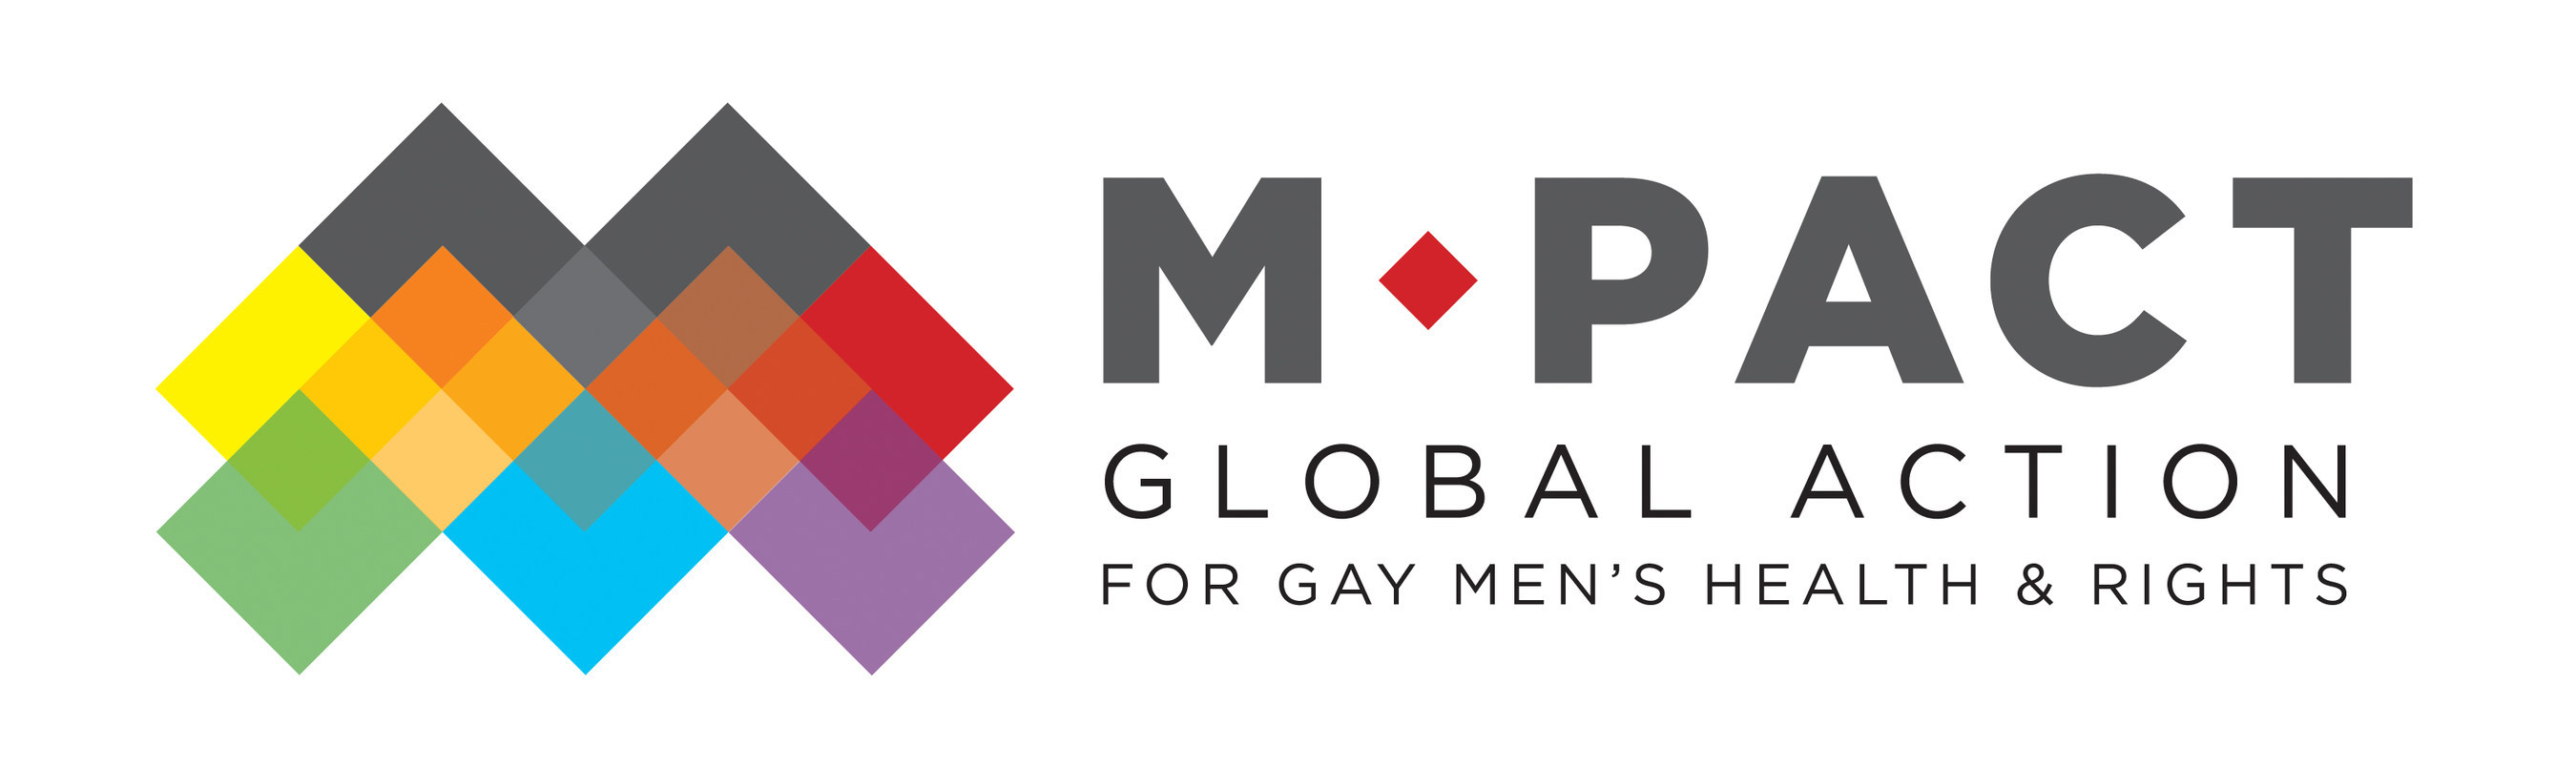 MPact (Formerly MSMGF or The Global Forum on MSM & HIV)